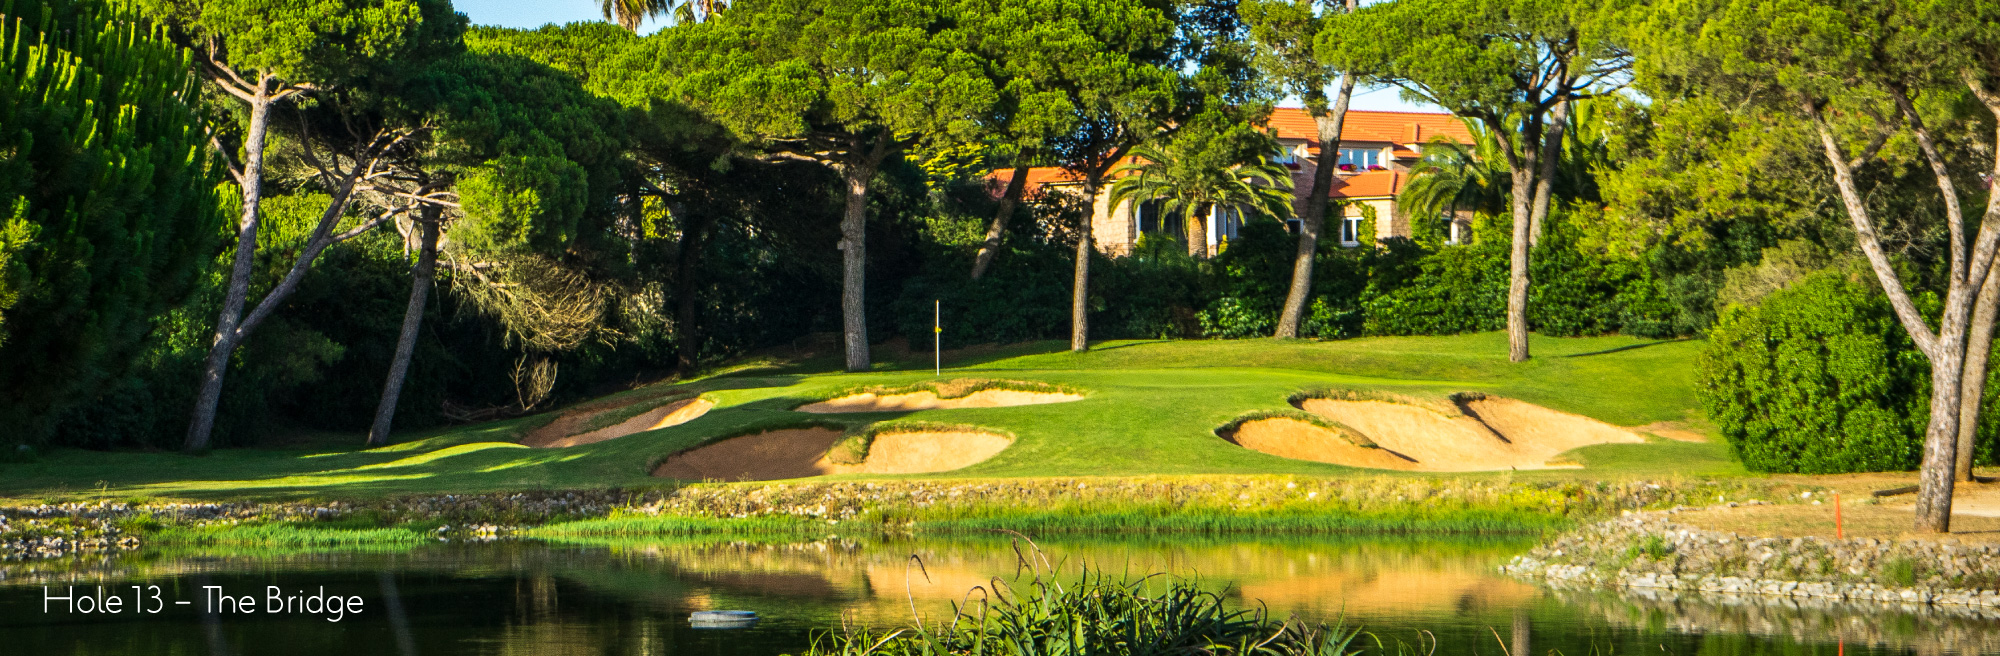 Ofertas do Quinta da Marinha Golf